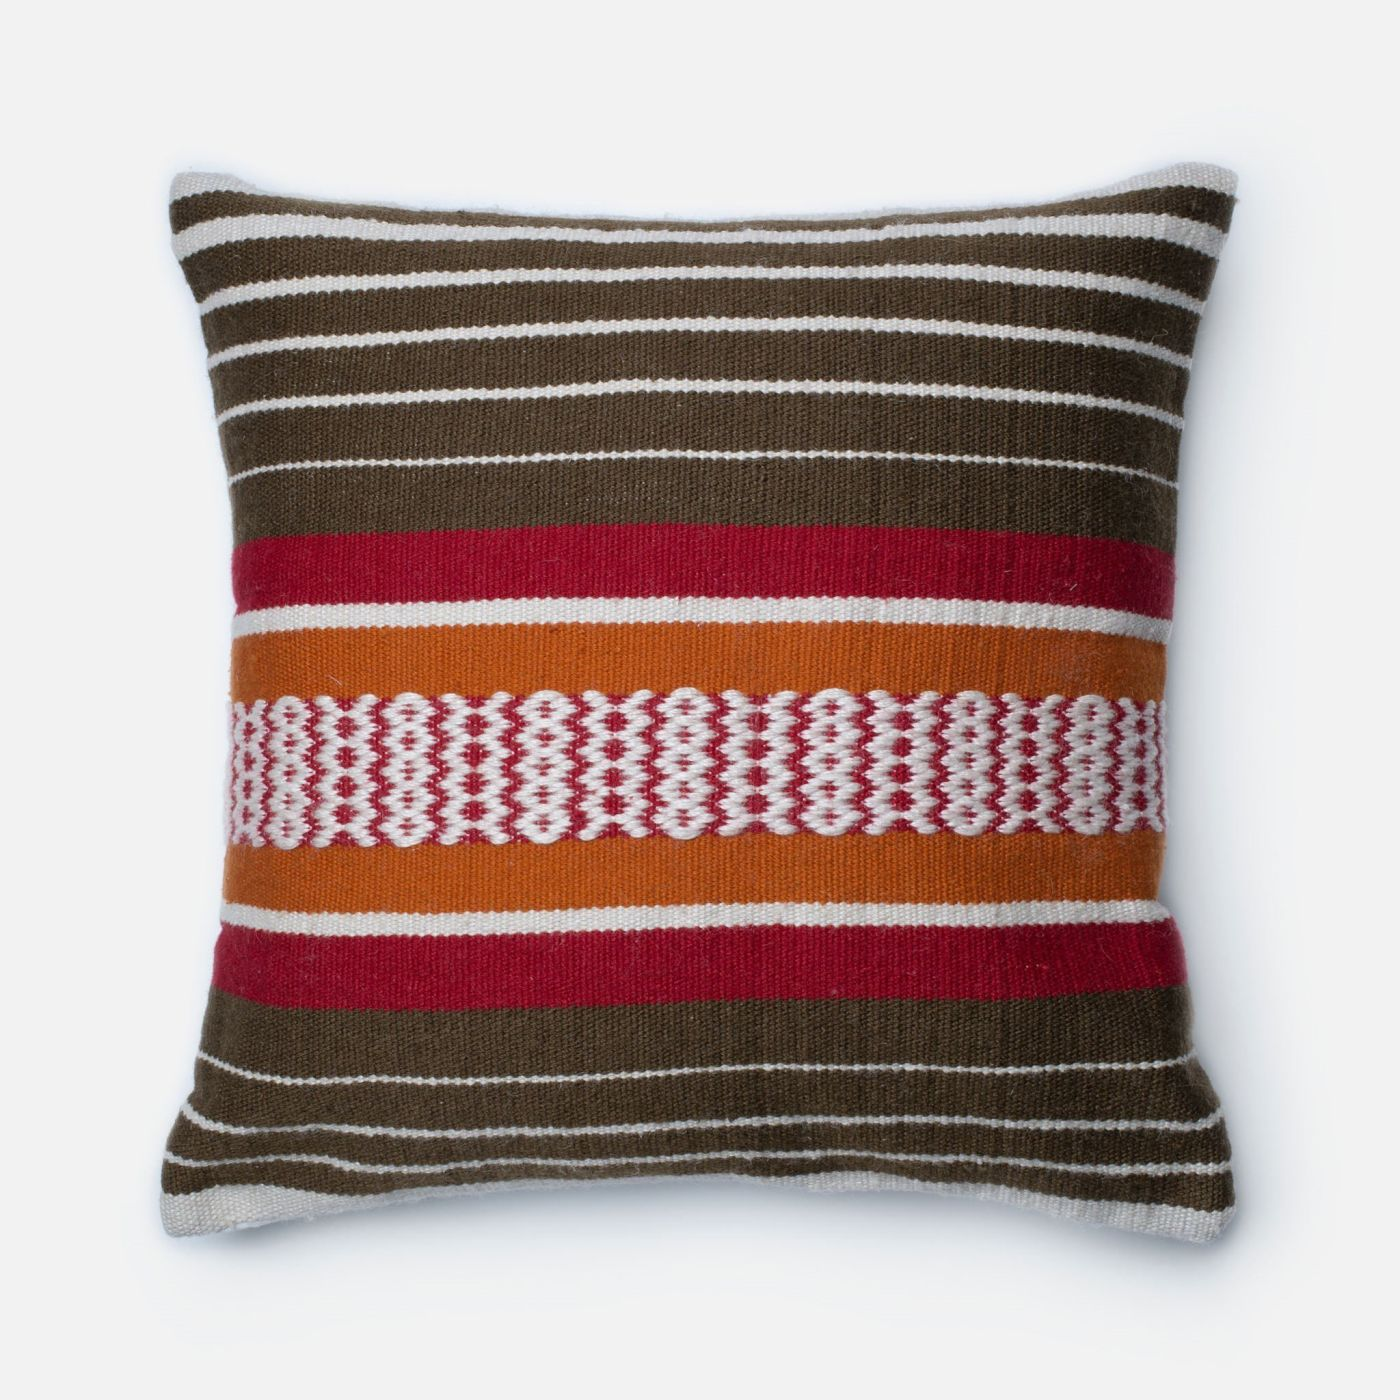 Throw Pillow Warehouse : Loloi Rugs Loloi Brown / Multi Decorative Throw Pillow (P0214) DSETP0214BRMLPIL3. Only $69.00 at ...